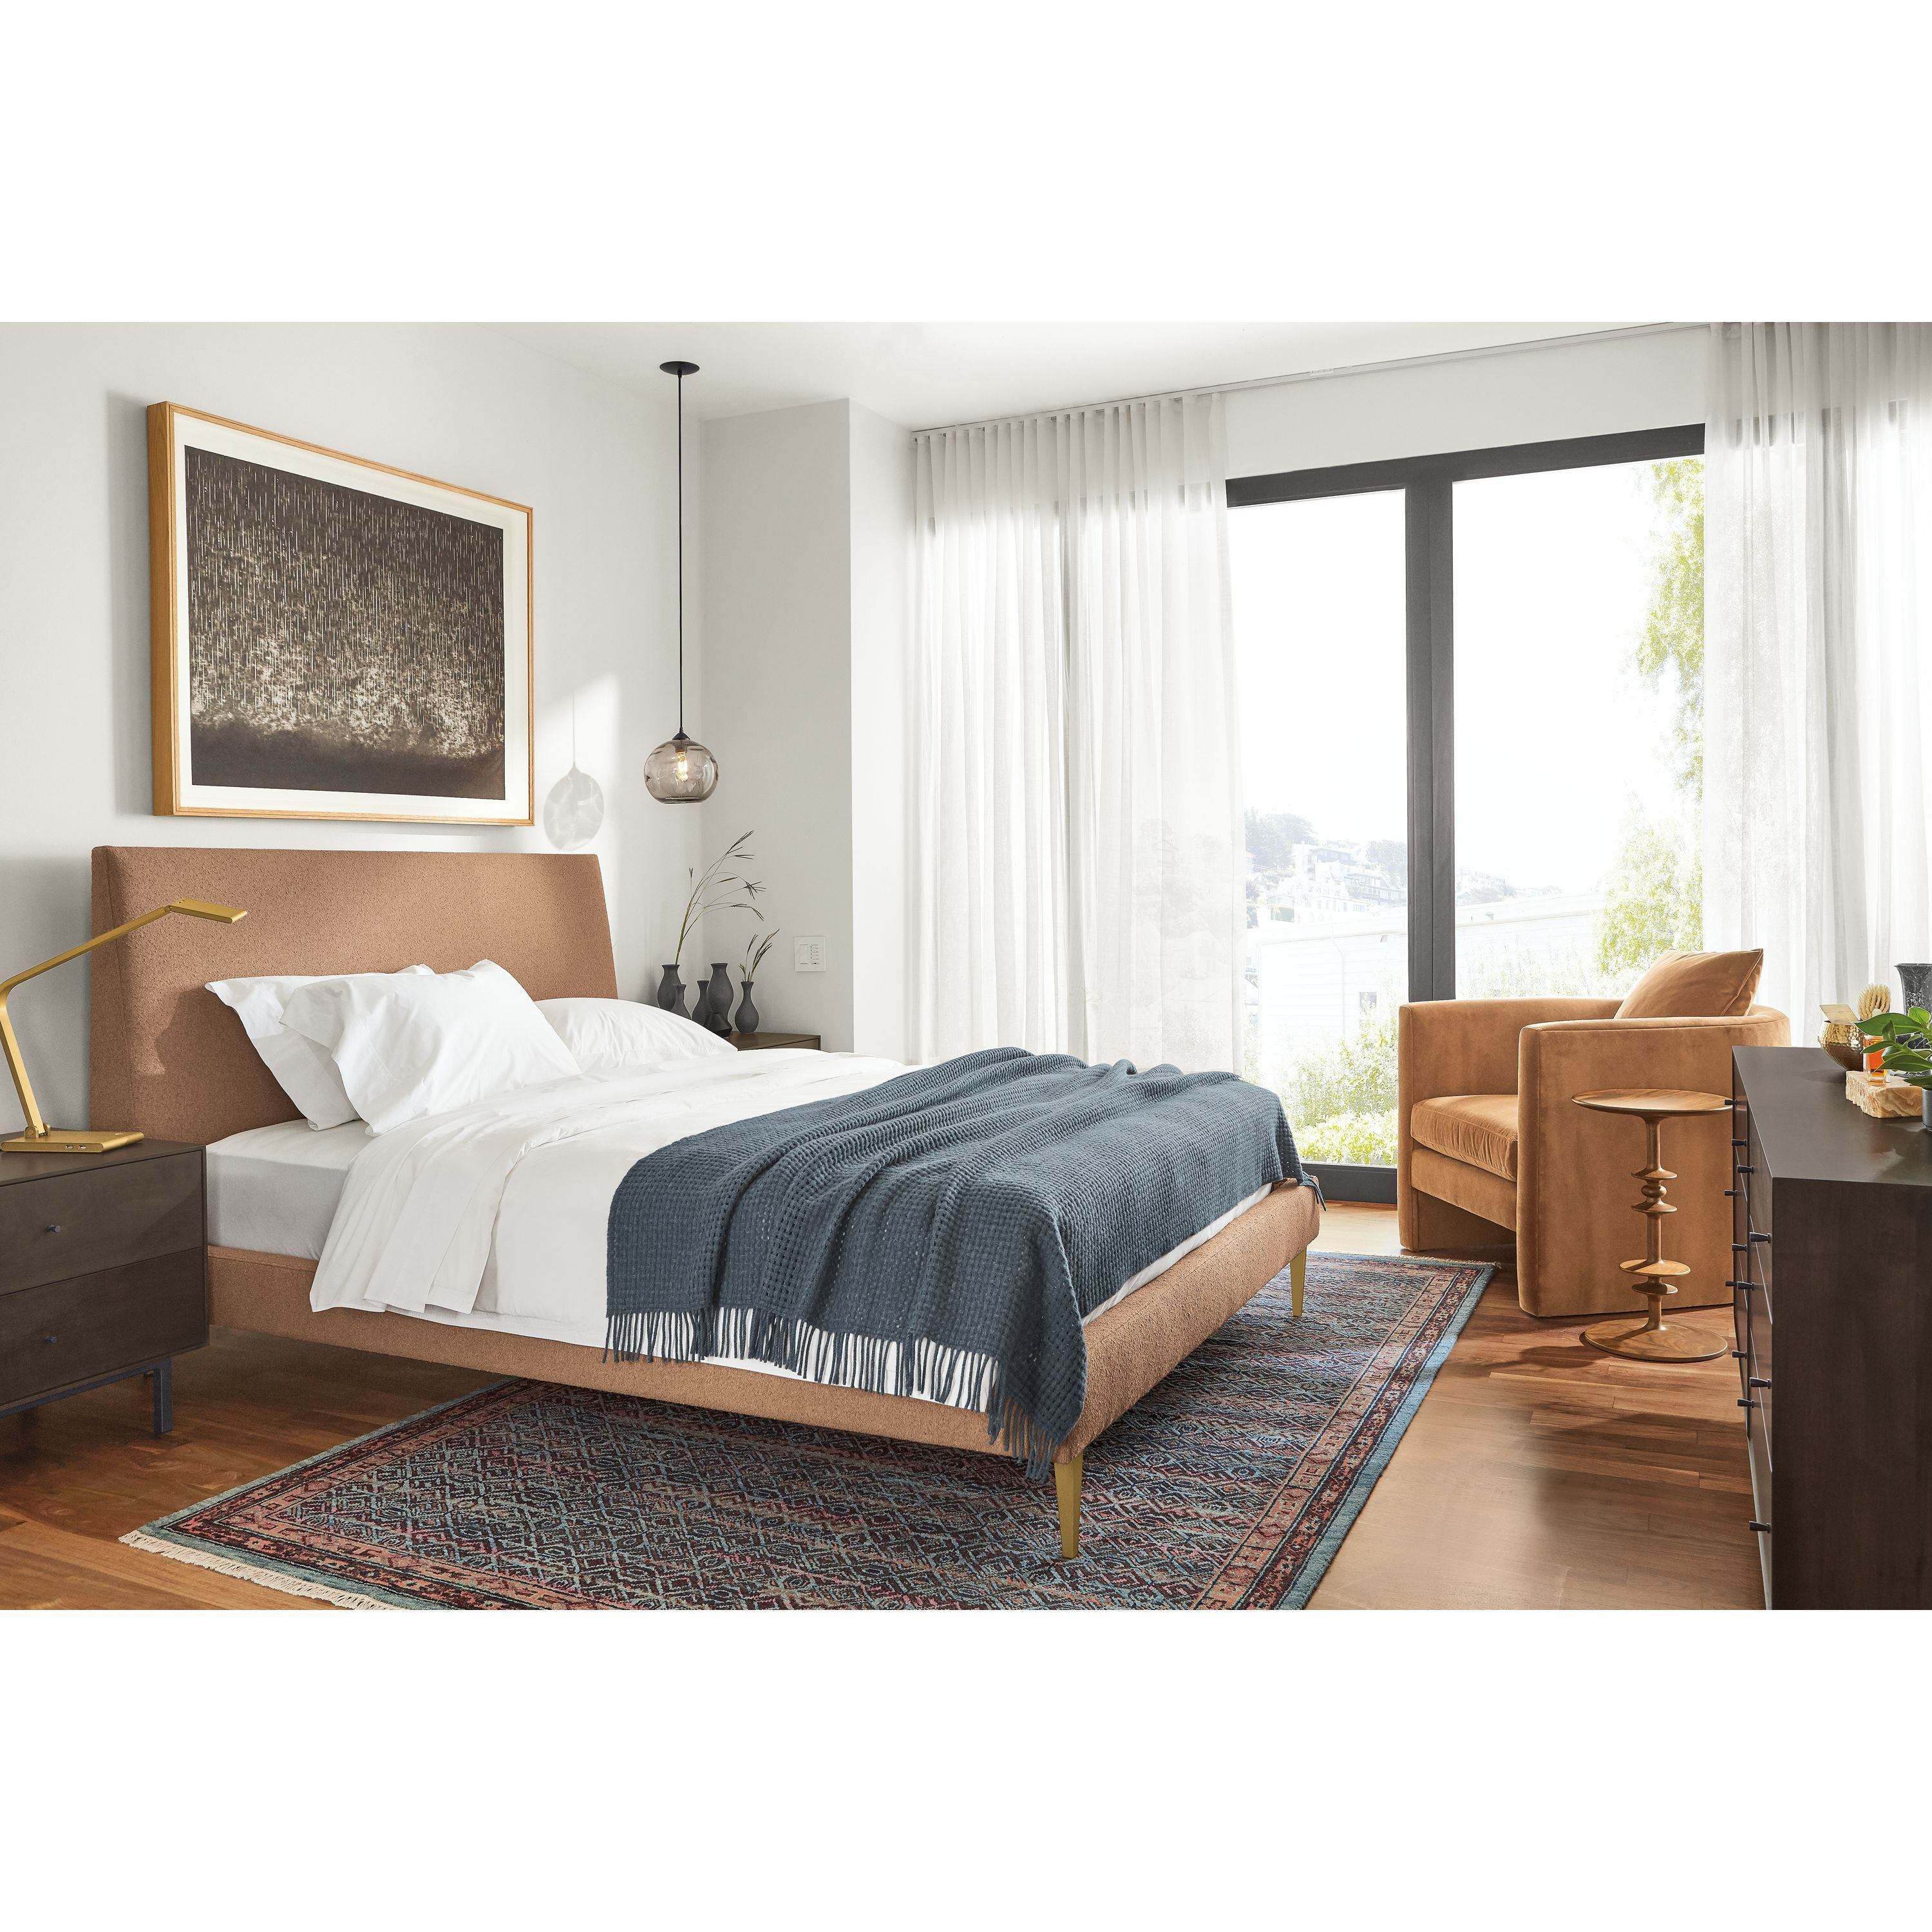 Room Board Percale Top Stitch Duvet Cover Shams In 2020